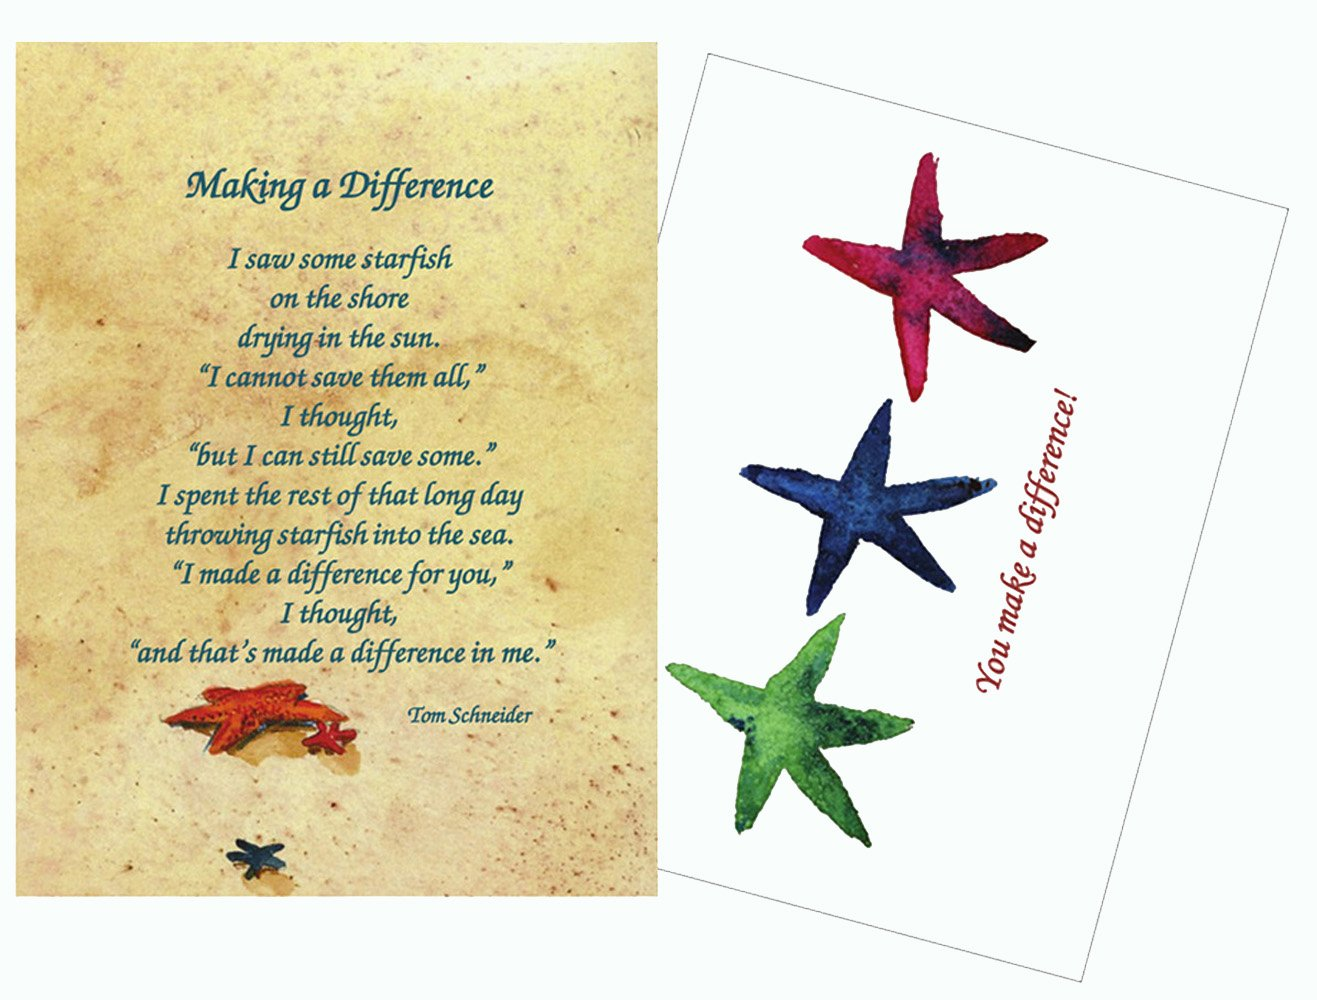 Starfish poem card - Amazon Com Starfish Story Poem Making A Difference Inspirational Prayer Greeting Cards 25 Laminated Cards Office Products